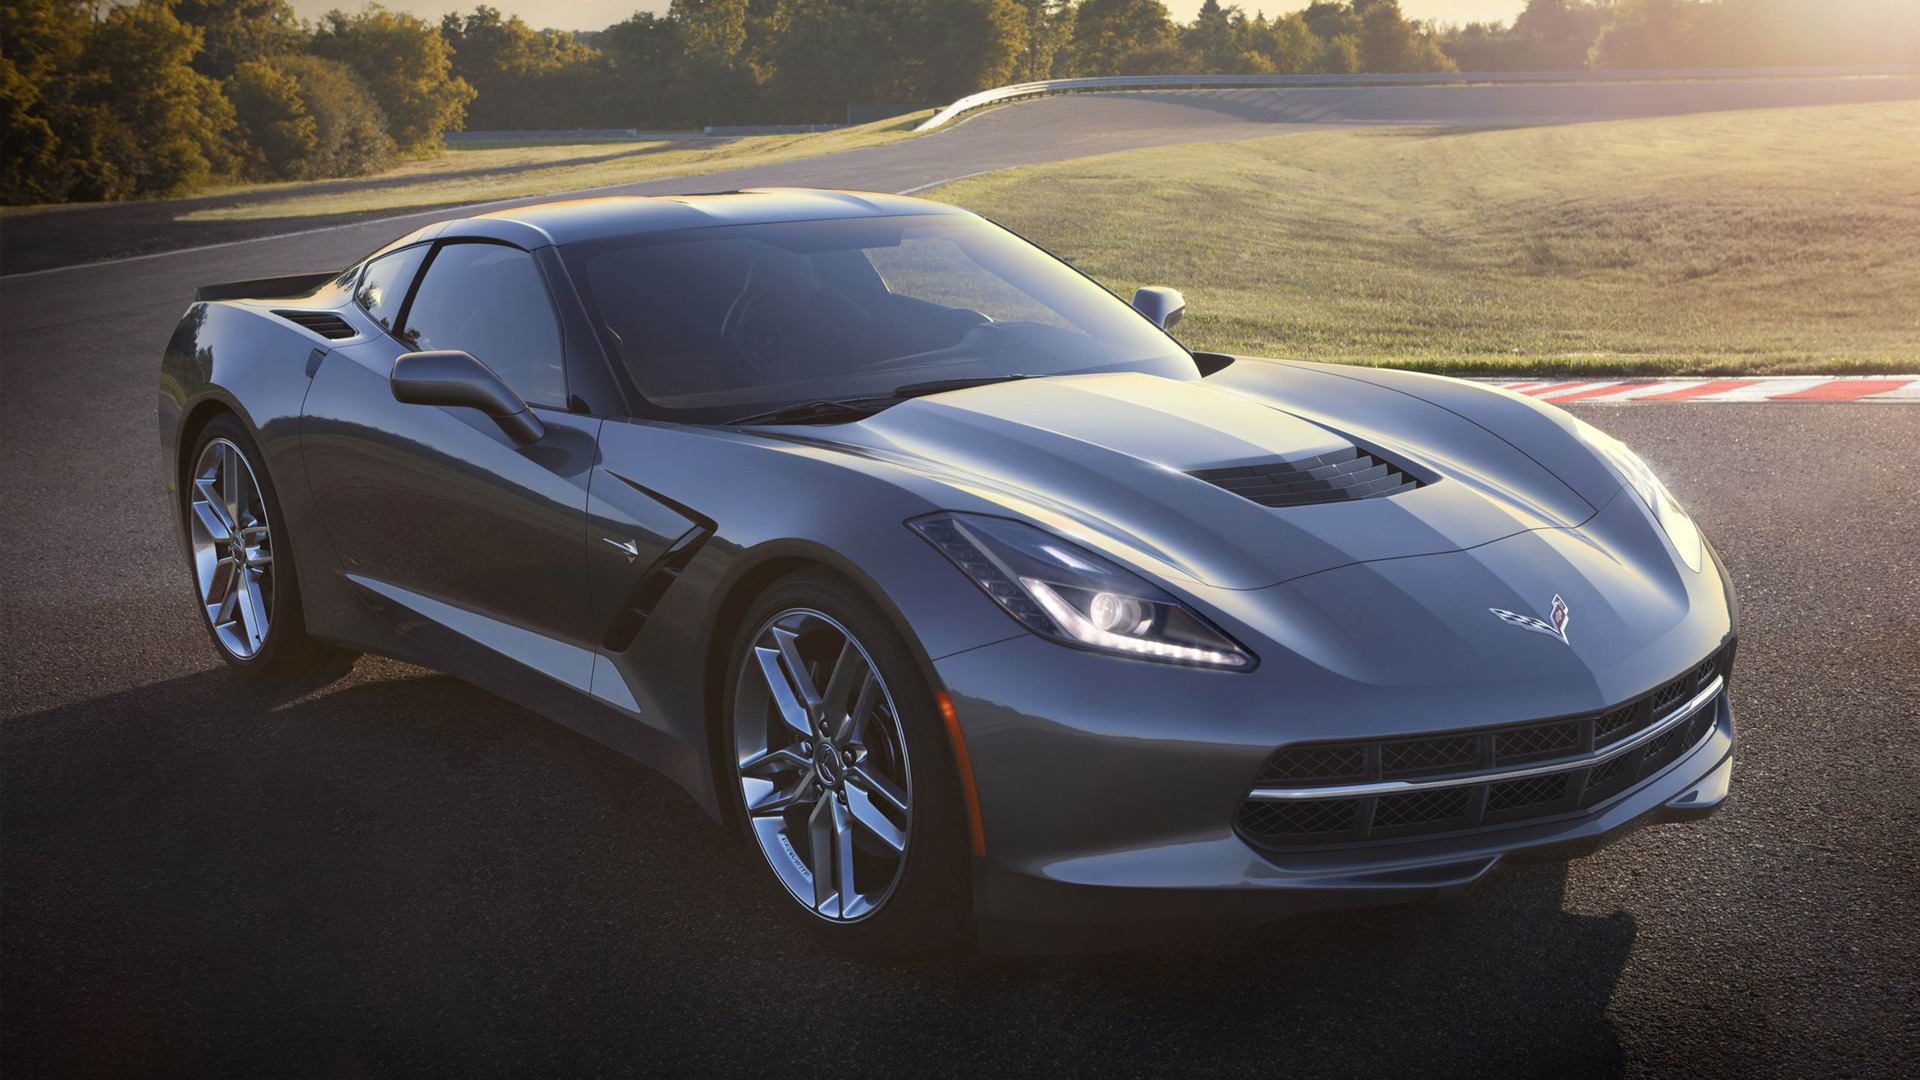 2014 corvette stingray black wallpaper 2014 Chevrolet Corvette C7 Stingray Black Wallpapers - WALLS-WORLD.COM